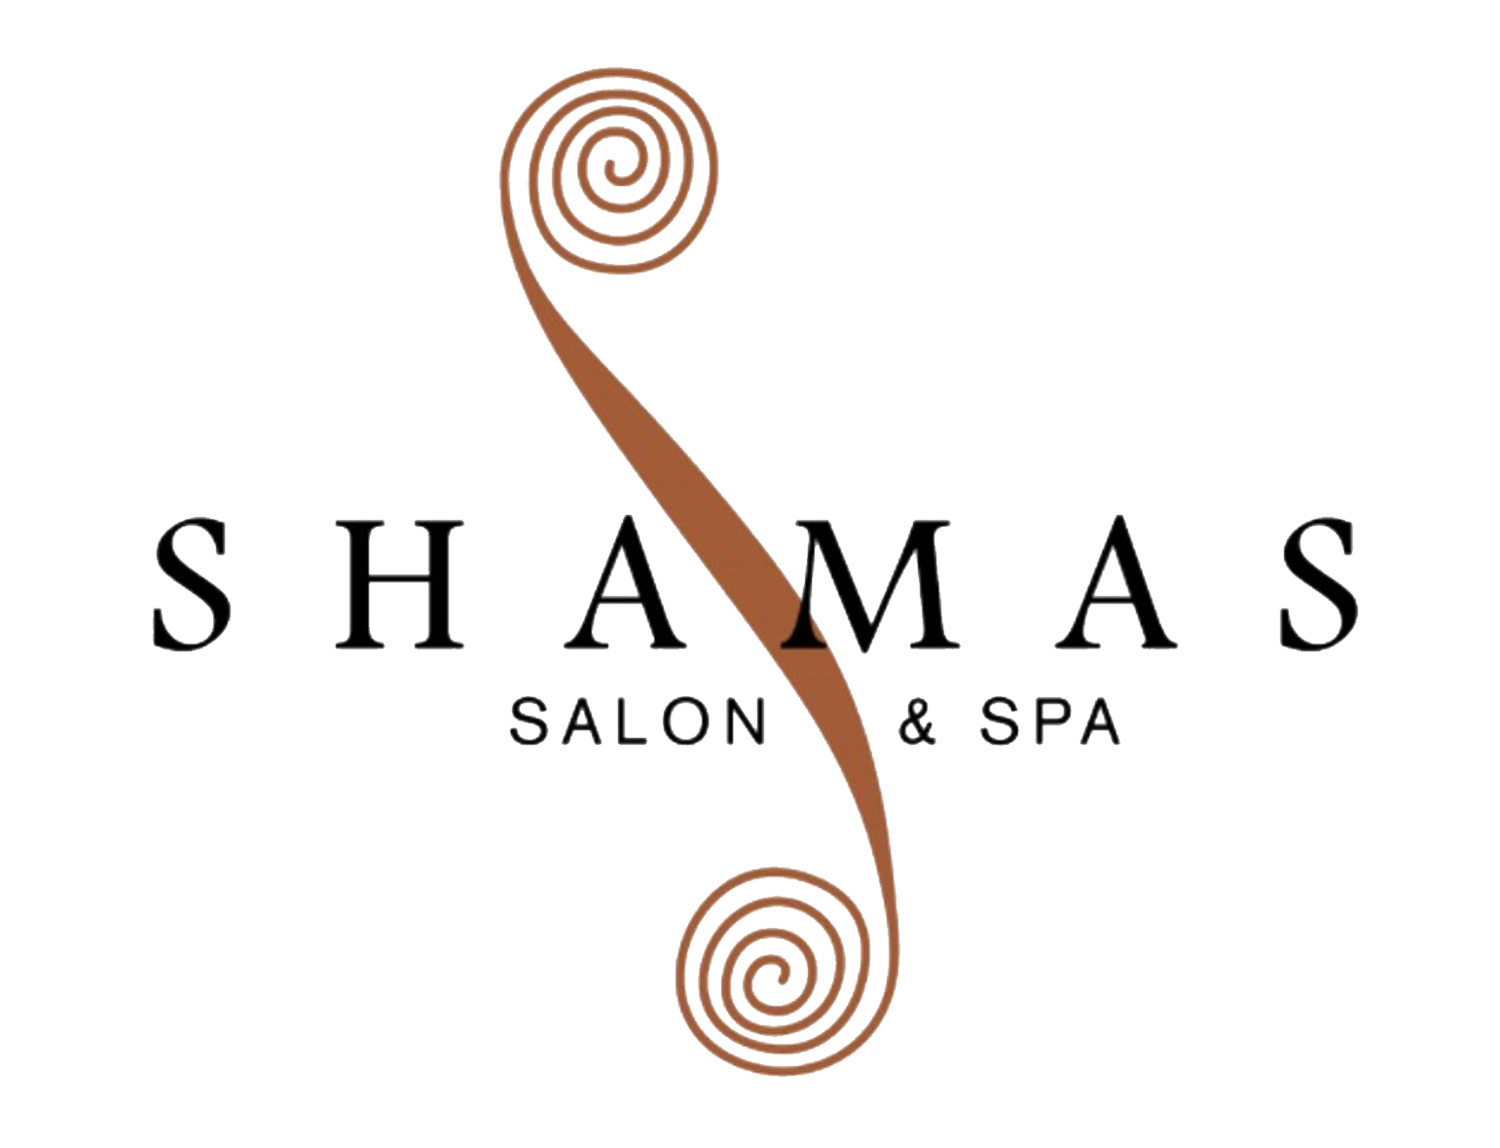 Shamas Salon and Spa